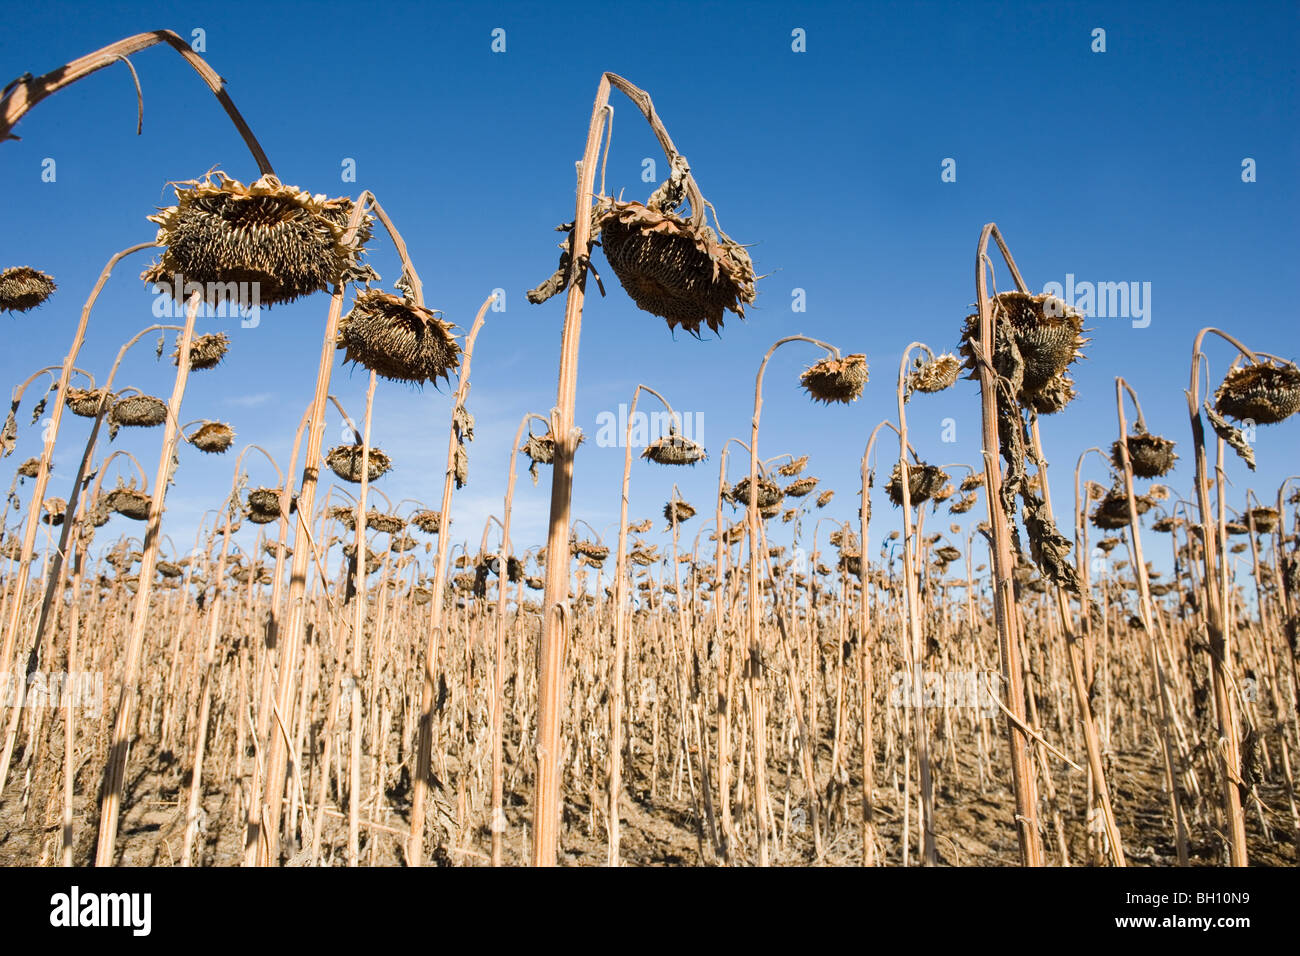 field of dead sunflowers against blue sky - Stock Image